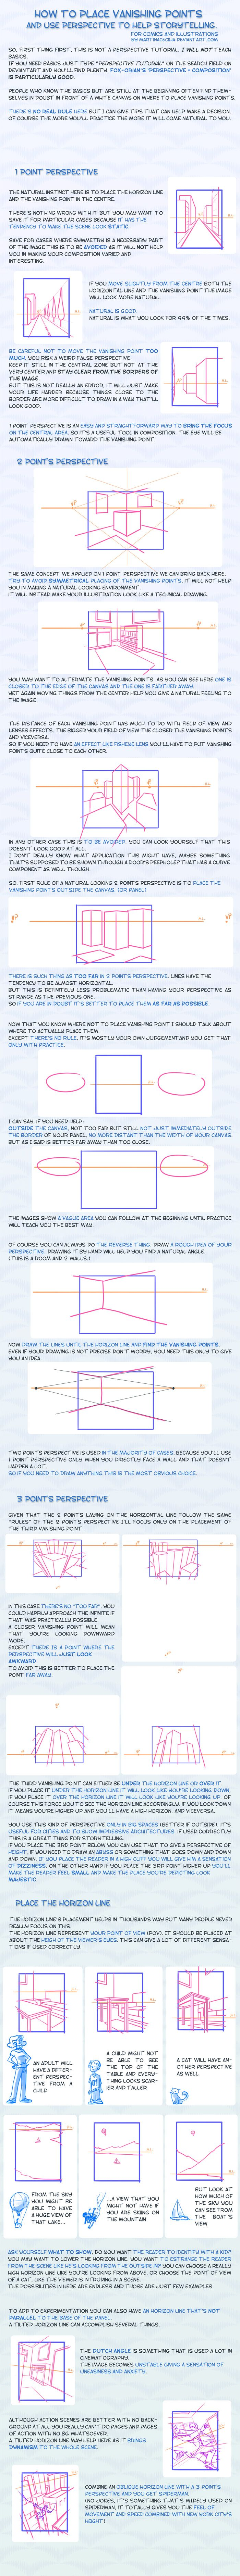 How to place vanishing points by *martinacecilia on deviantART via cgpin.com